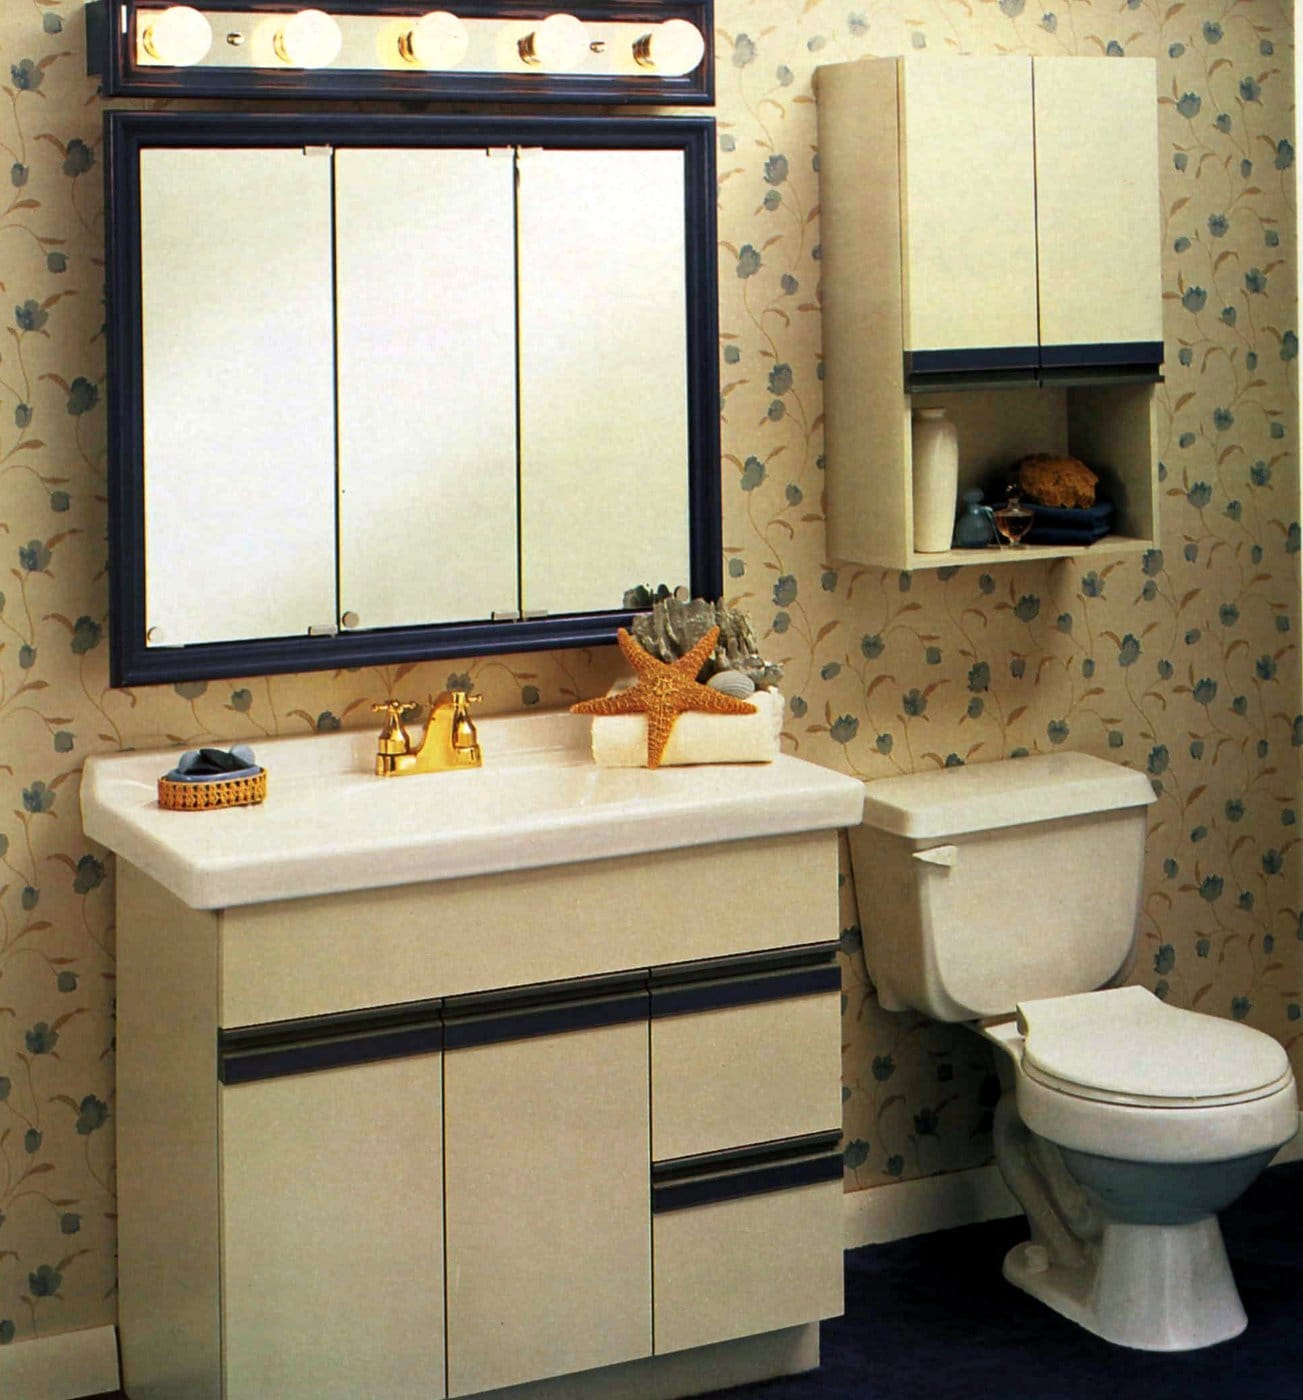 Late 80s simple bathroom decor